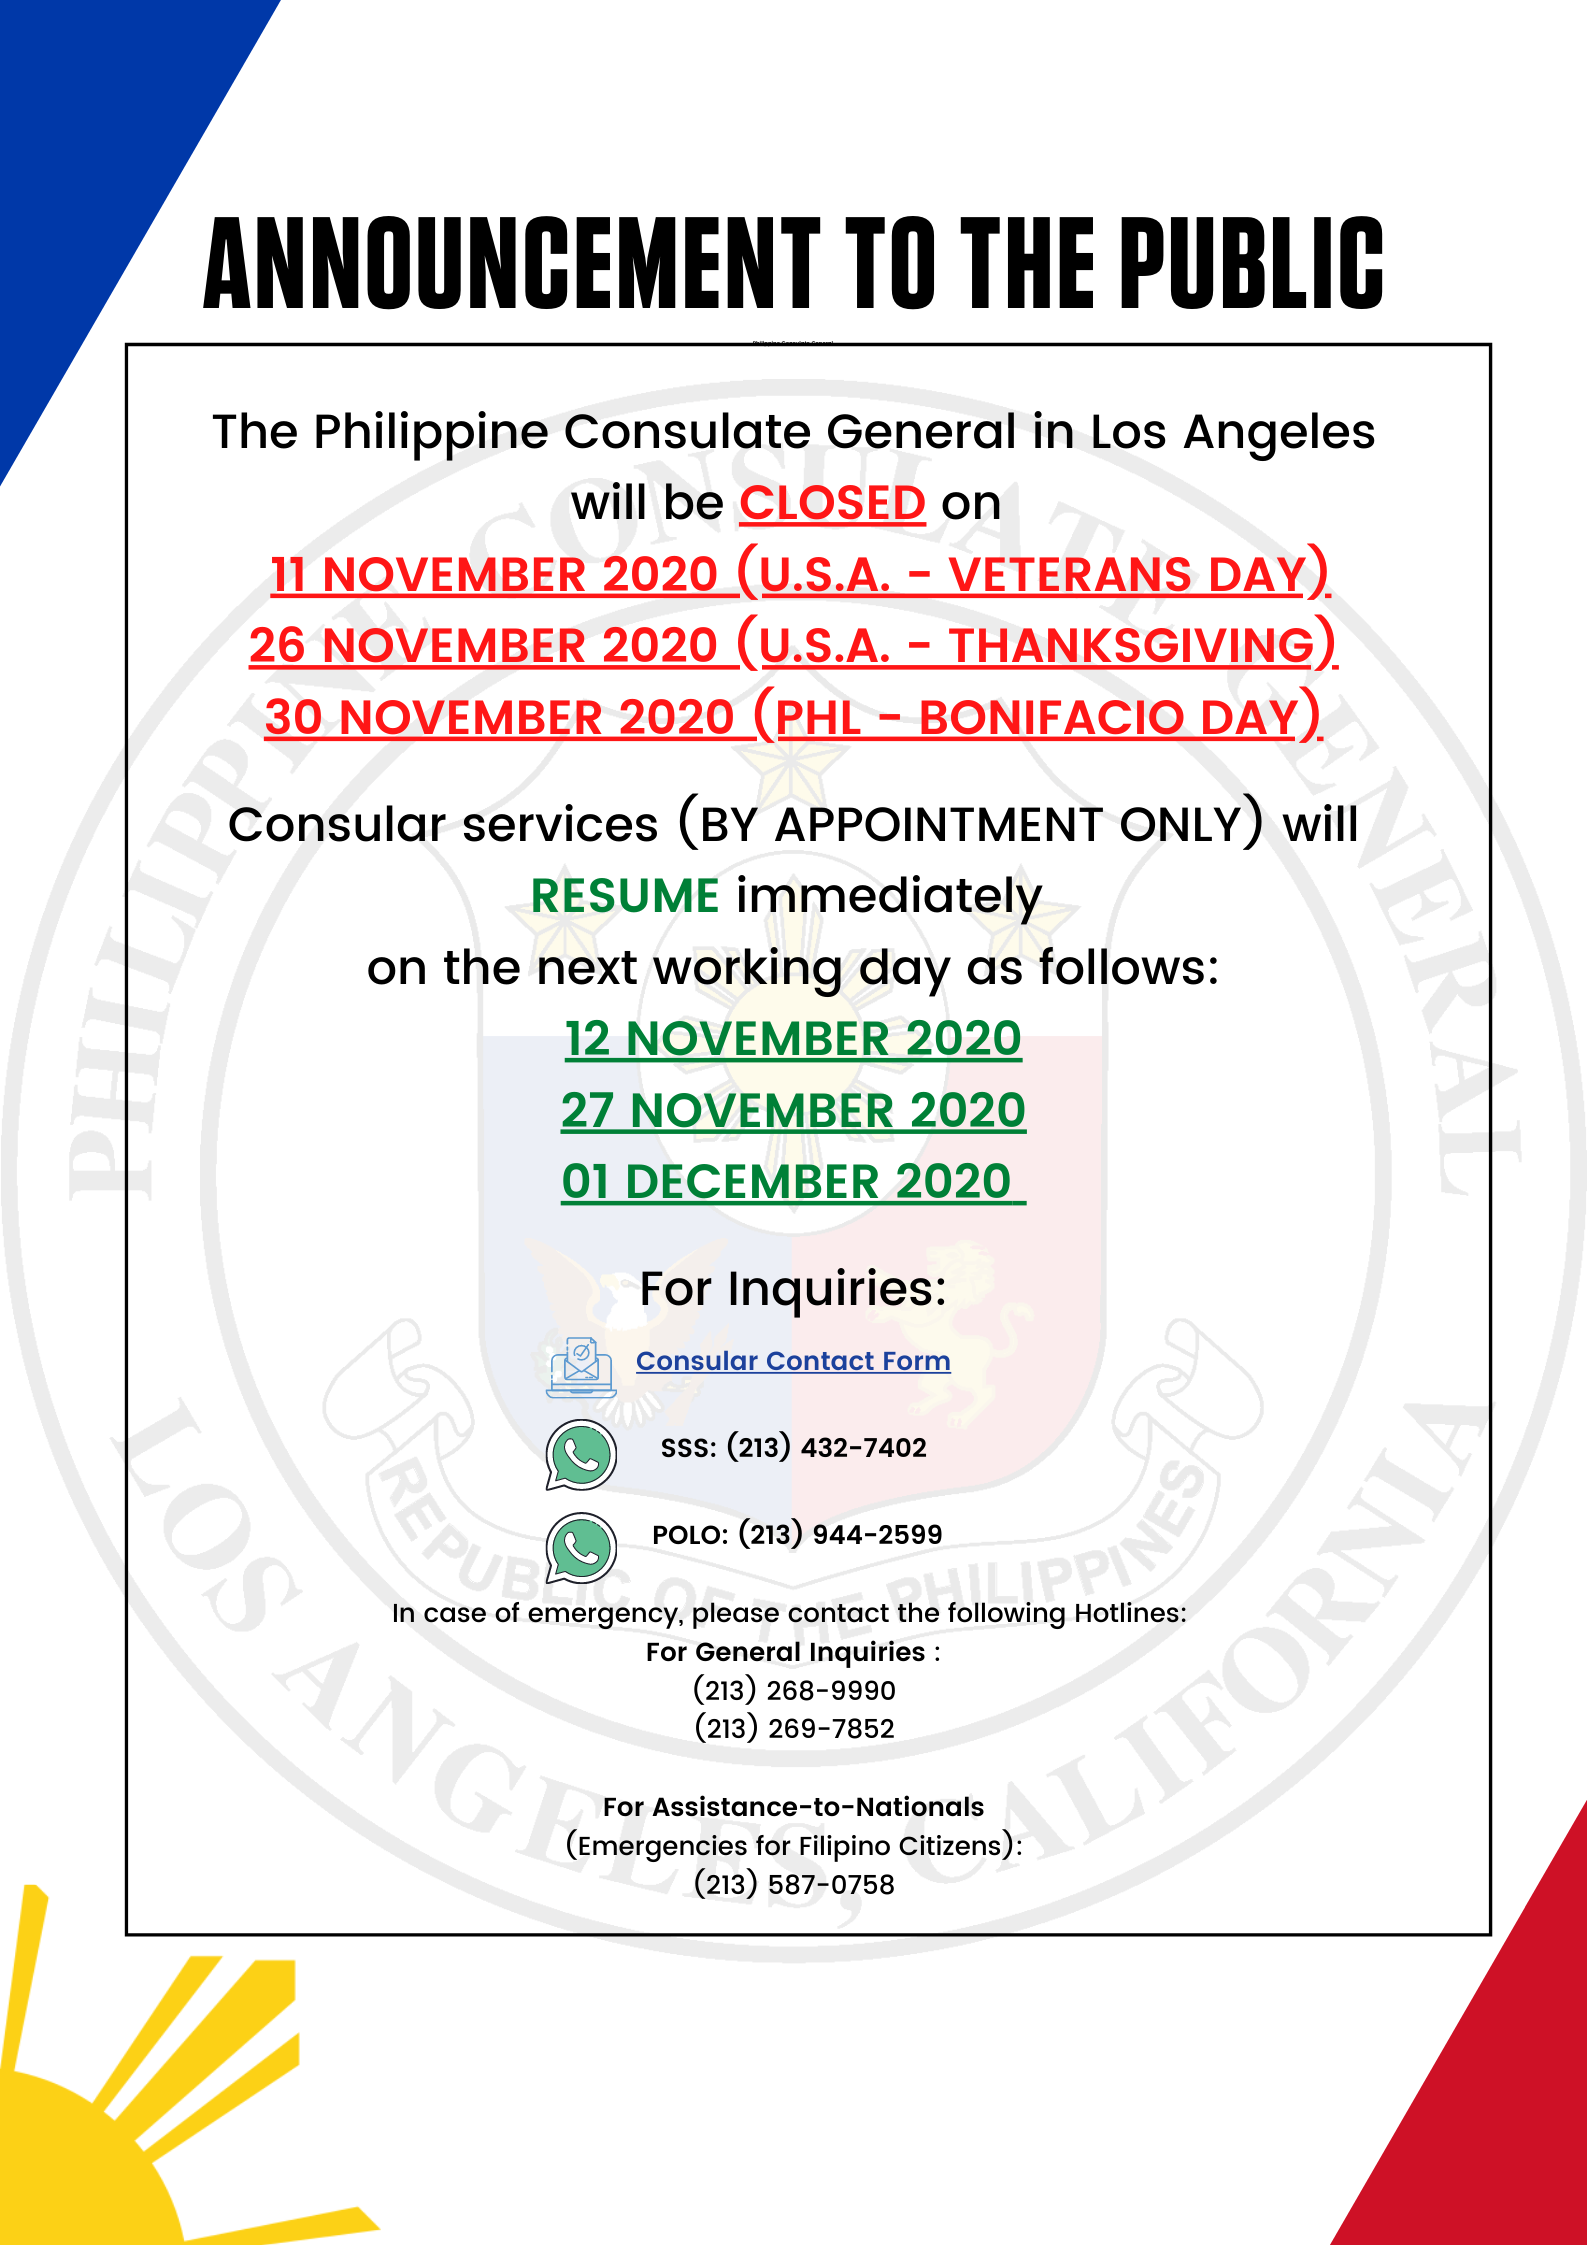 Investment guide for beginners philippines embassy manone investments with high returns